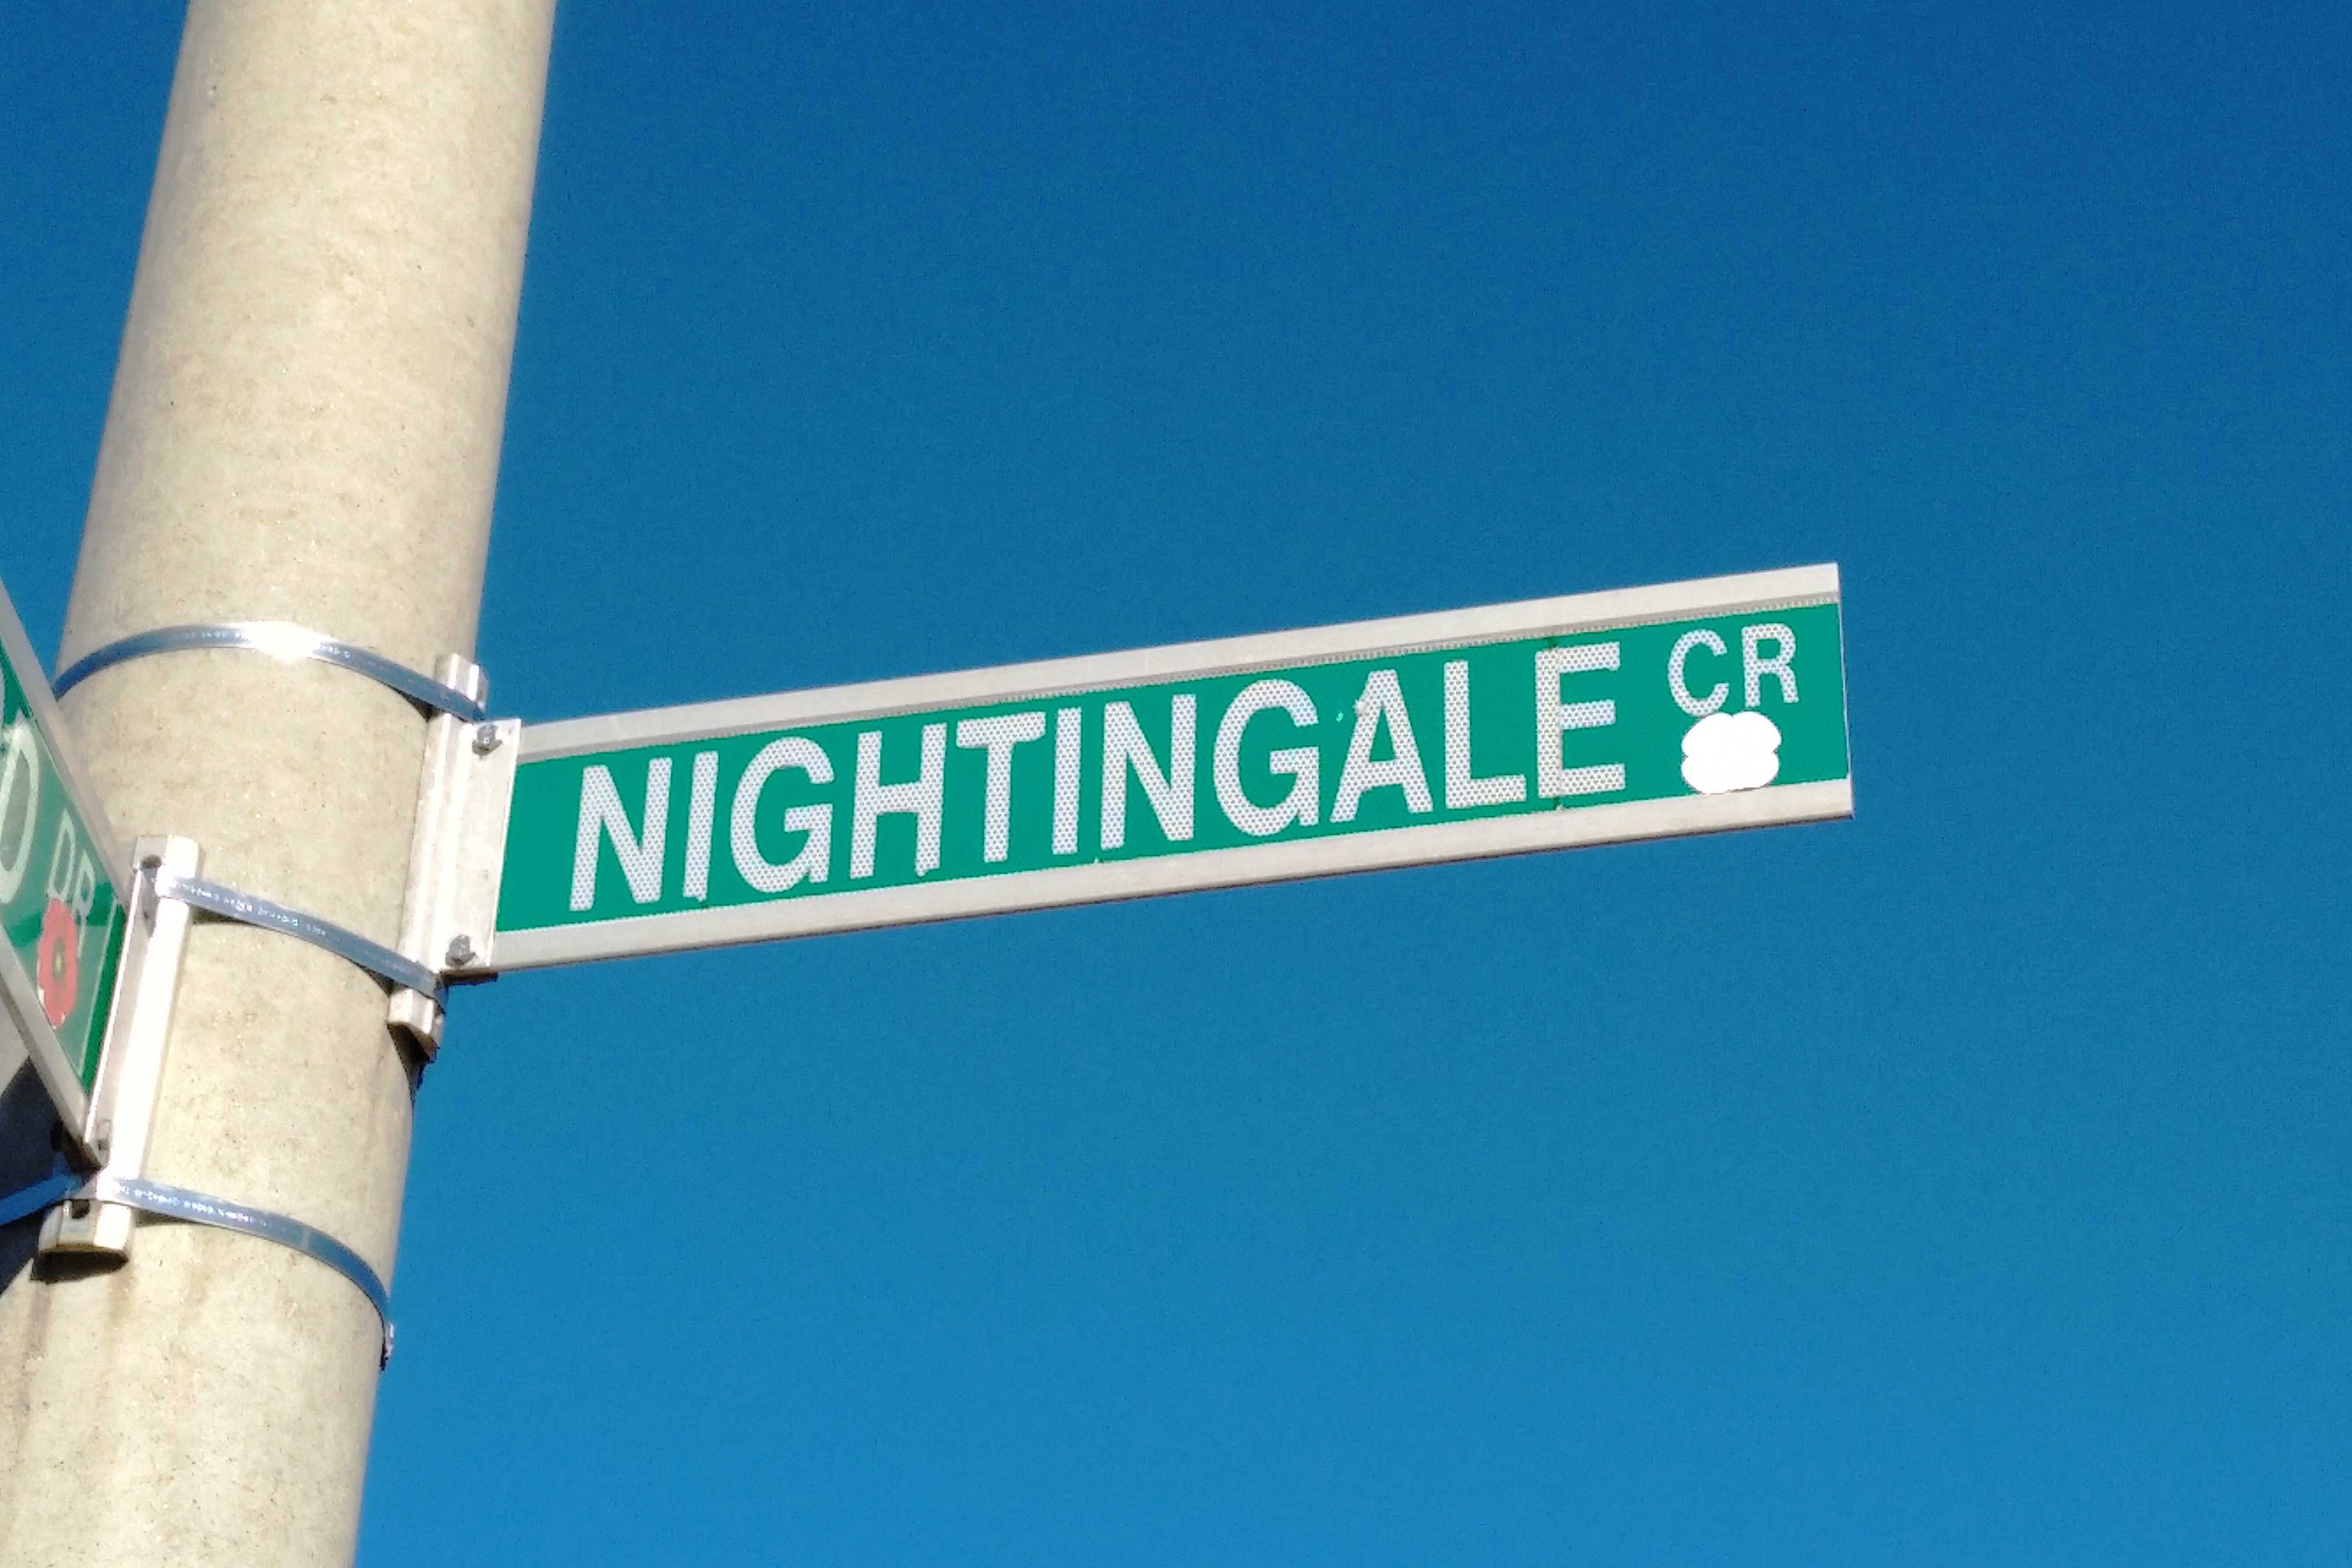 Memorial– Street sign on Nightingale Crescent in Barrie, Ontario.  This street was named in memory of Ordinary Seaman W.J. Nightingale, RNCVR.  (Image taken by Gregory J. Barker of Barrie, Ontario, in 2018.  Submitted by Navy League Cadet Corps CHAMBLY, Barrie, Ontario.)